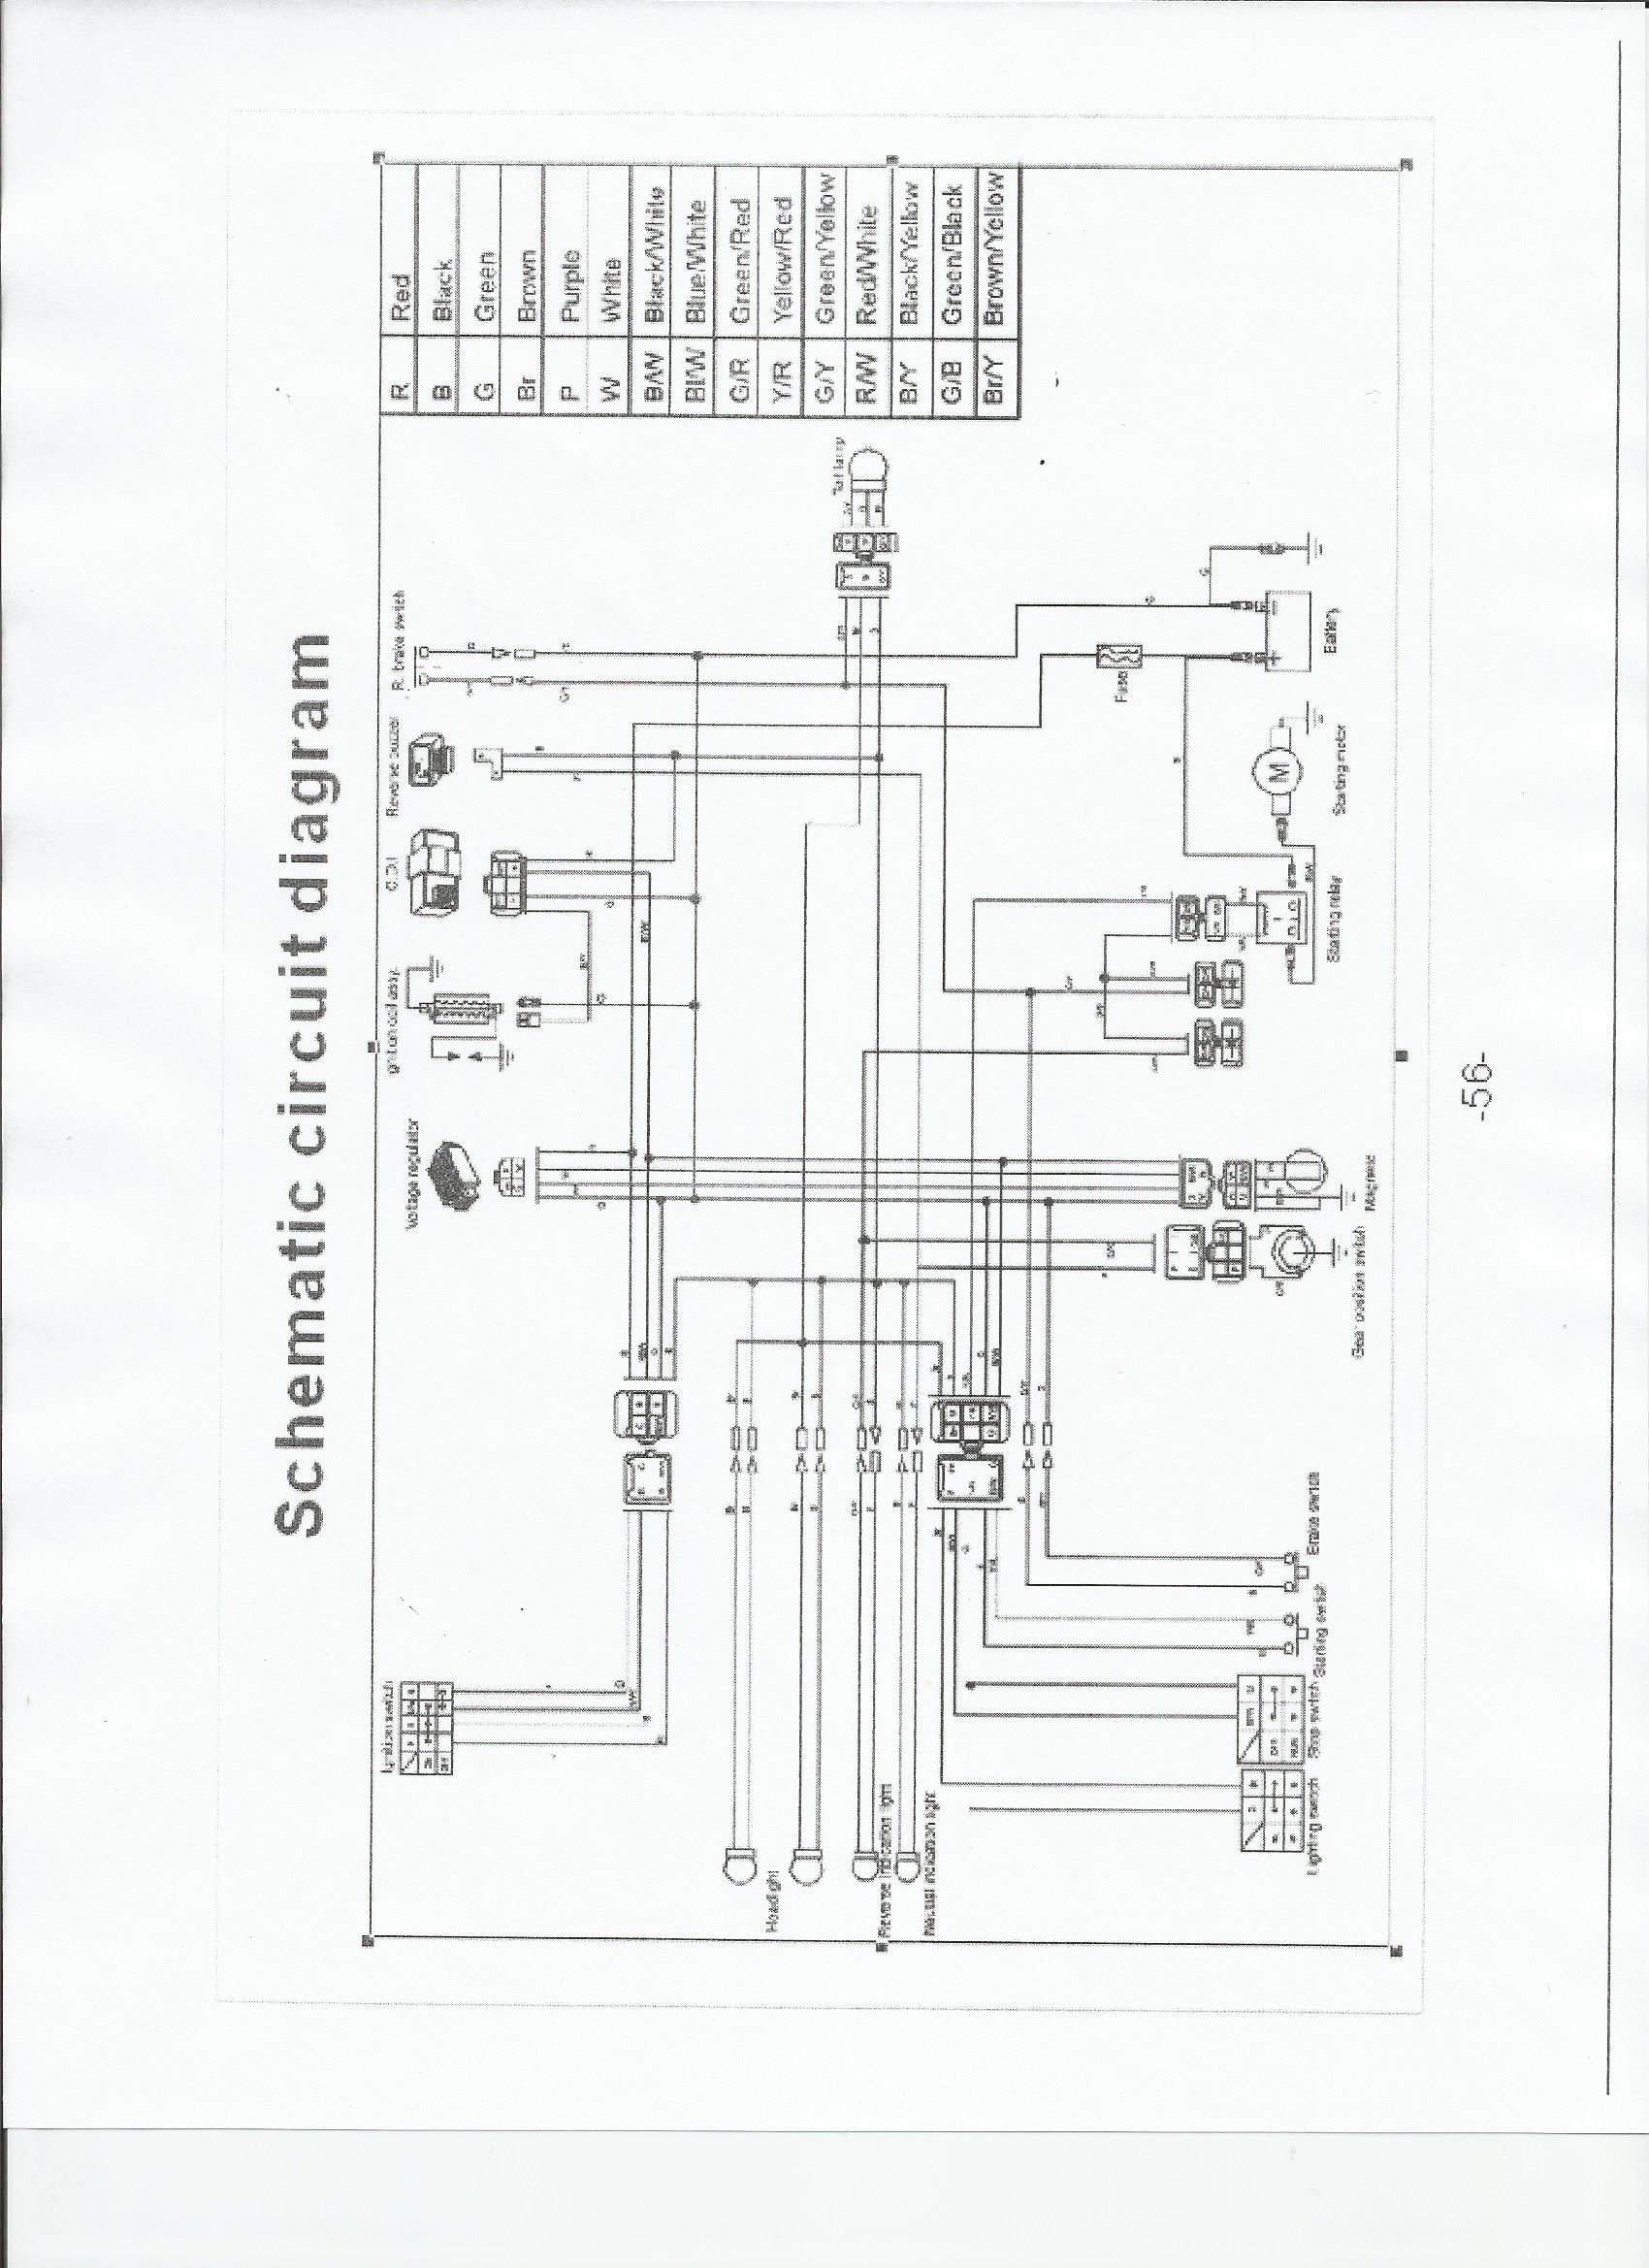 tao tao wiring schematic taotao mini and youth atv wiring schematic familygokarts support 125cc taotao atv wiring diagram at alyssarenee.co